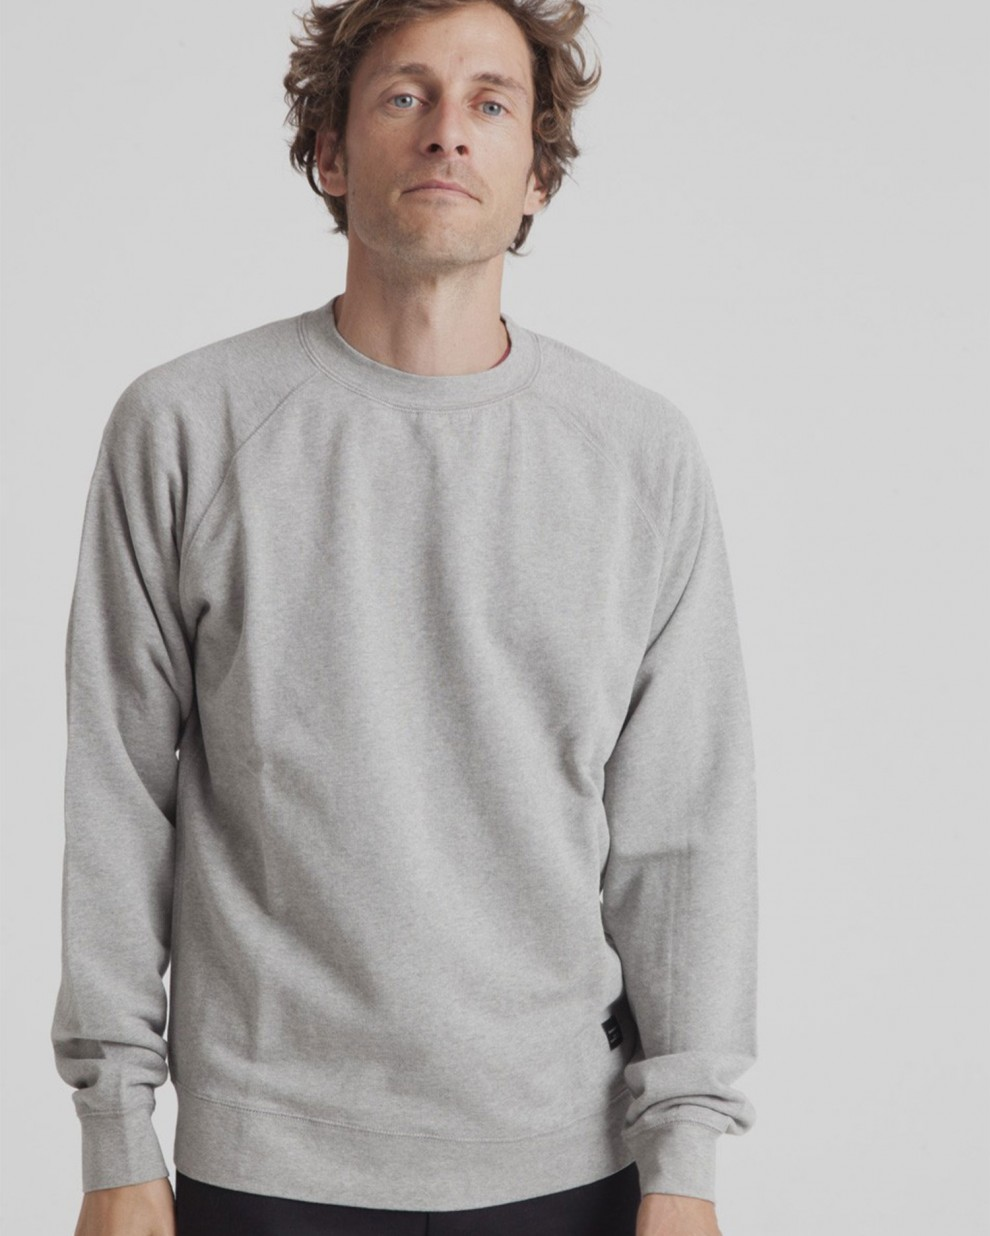 Grey melange basic sweatshirt